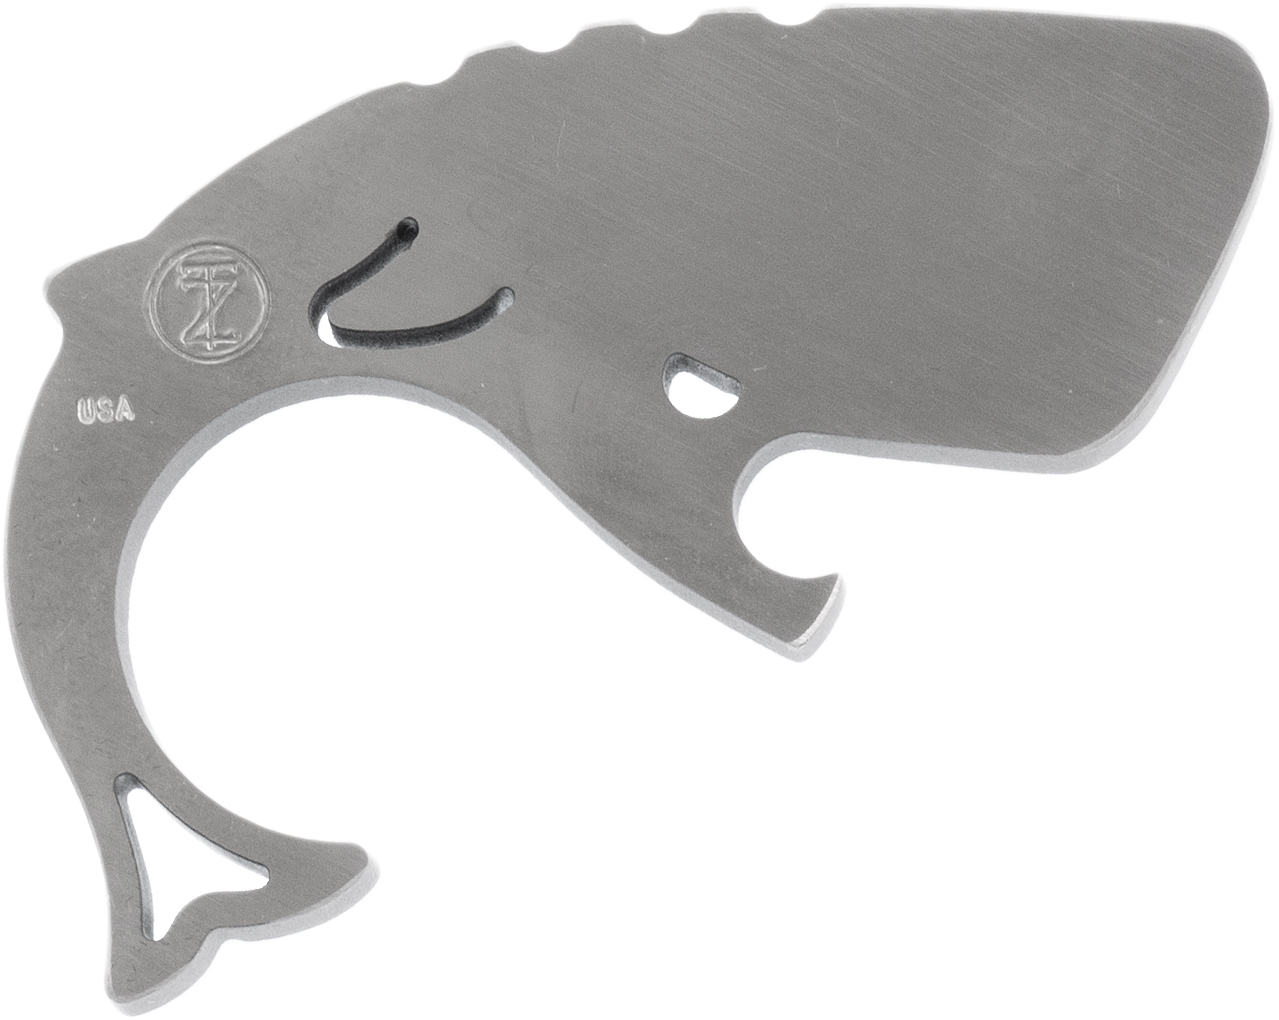 Moby Whalers 0.29 inch Thick Brushed Titanium Moby Whaler V3 Bottle Opener